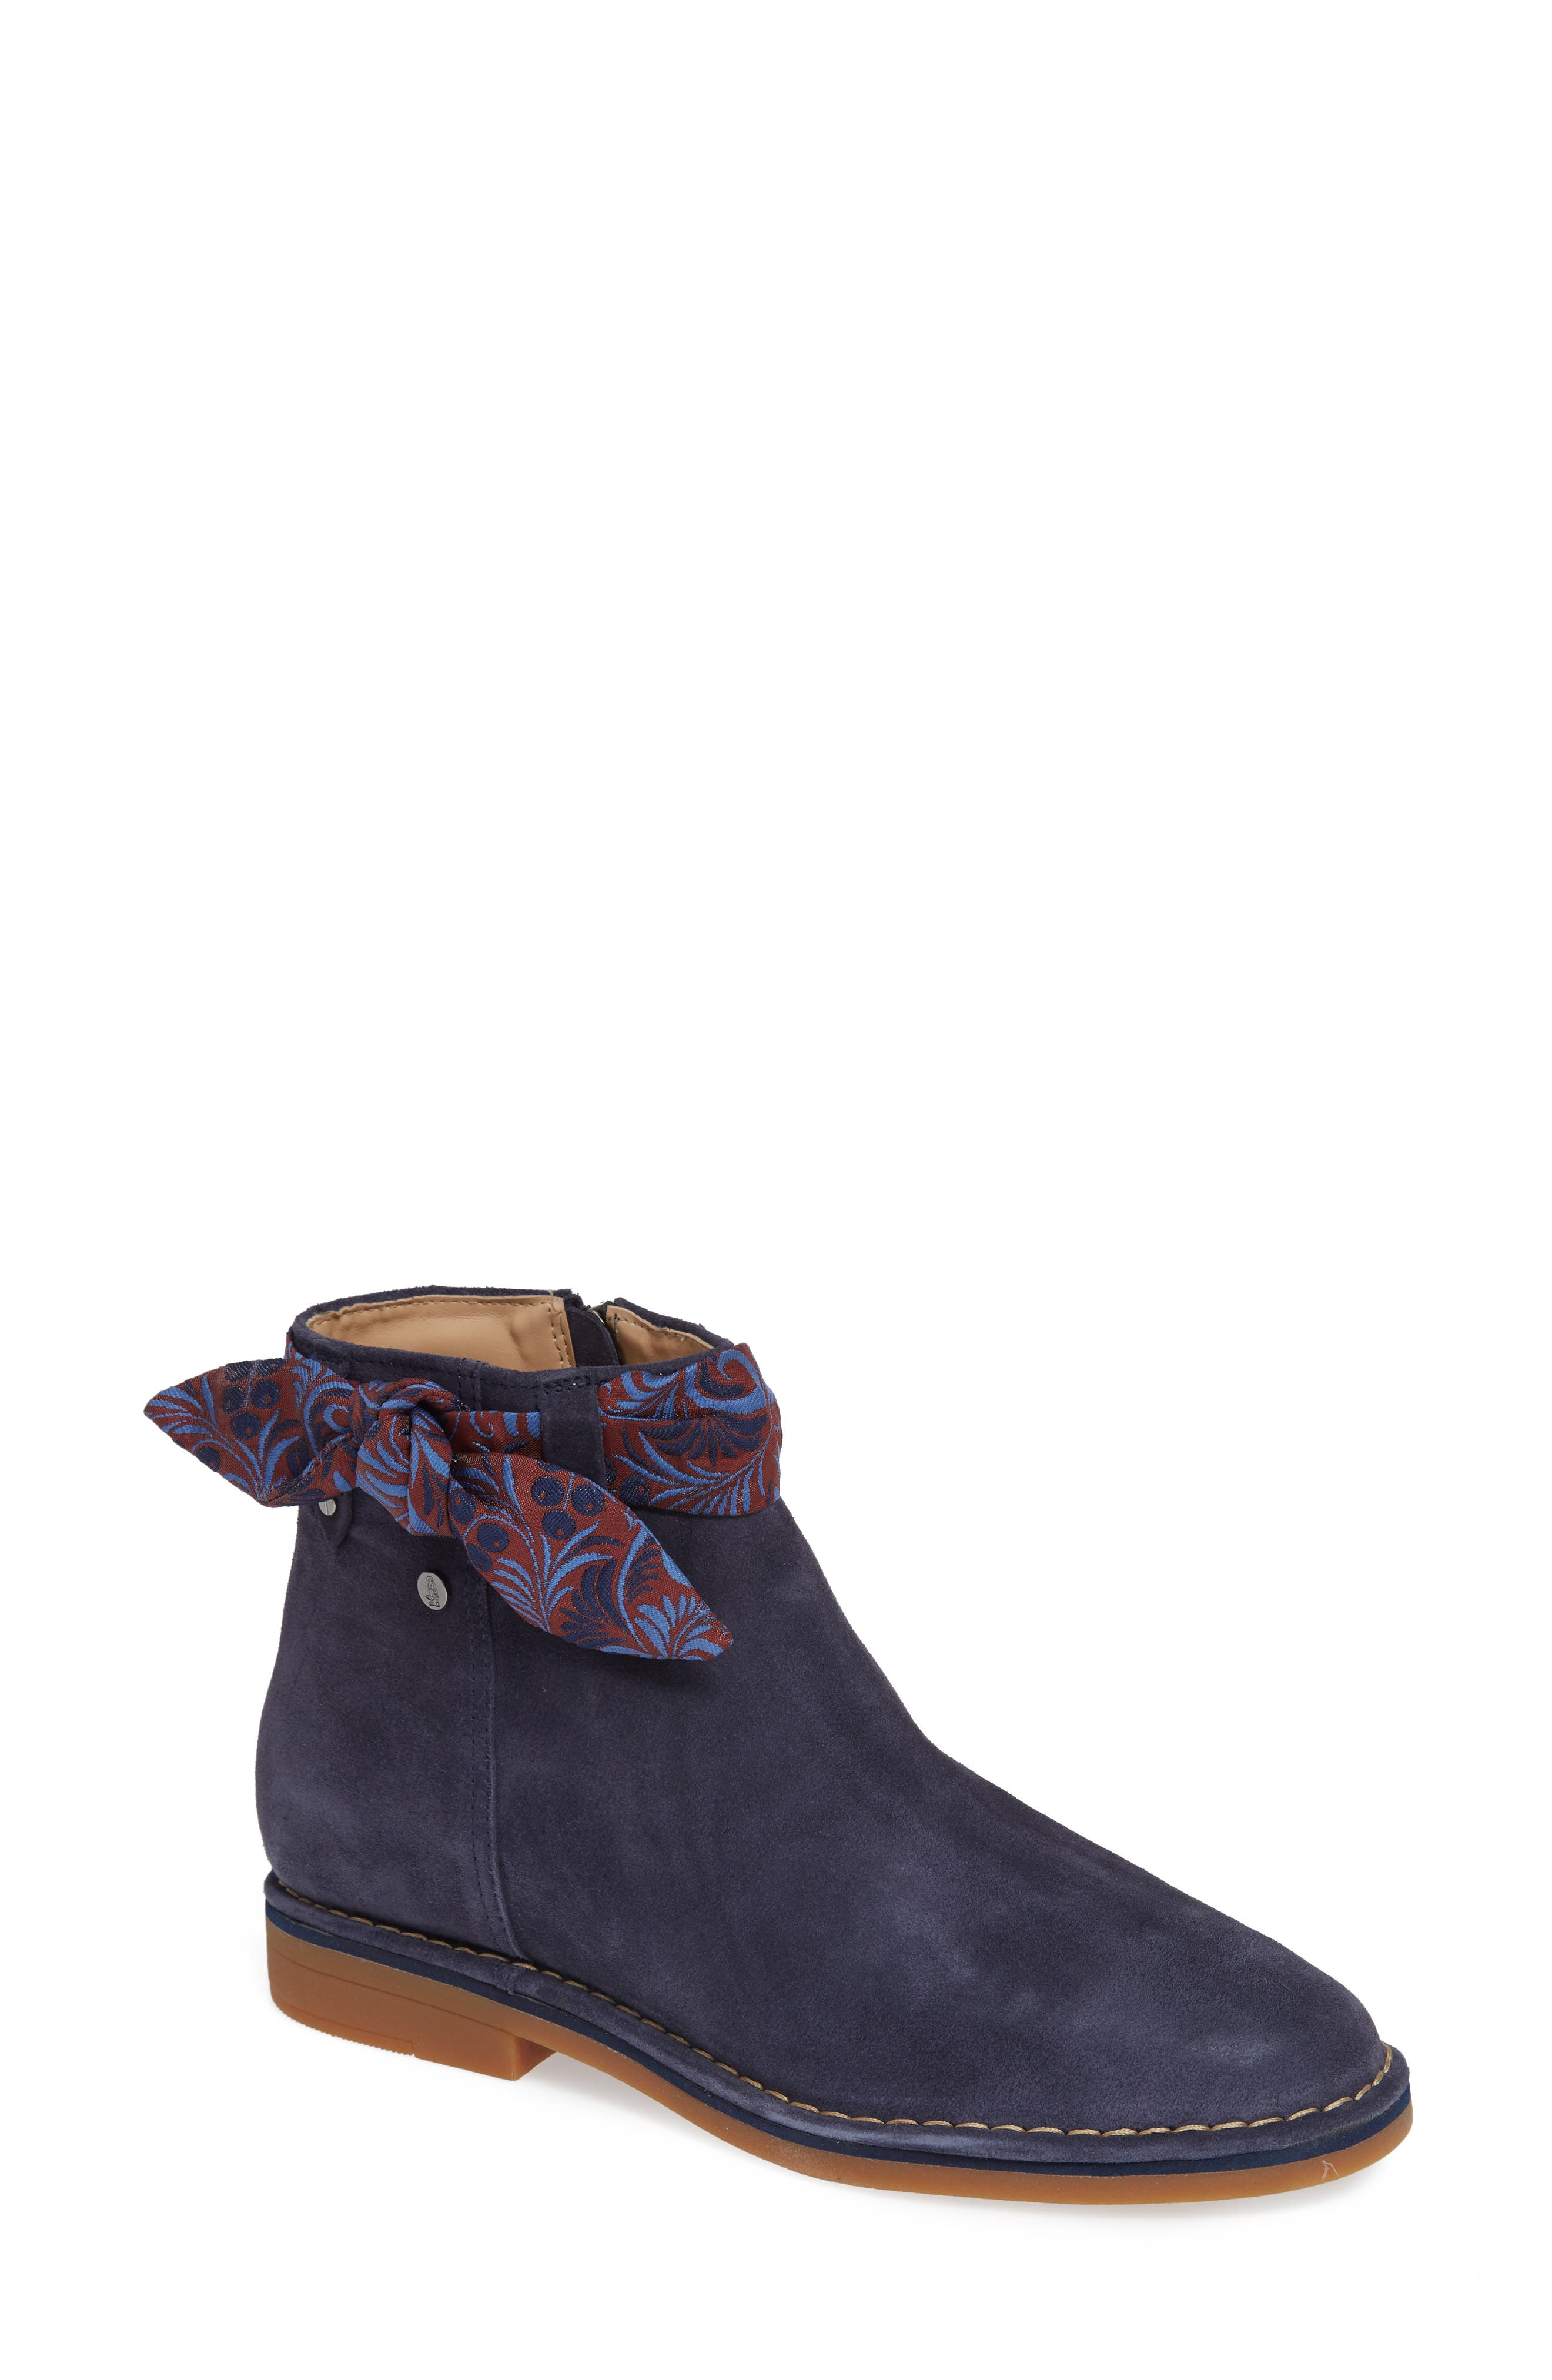 Hush Puppies Catelyn Bow Bootie